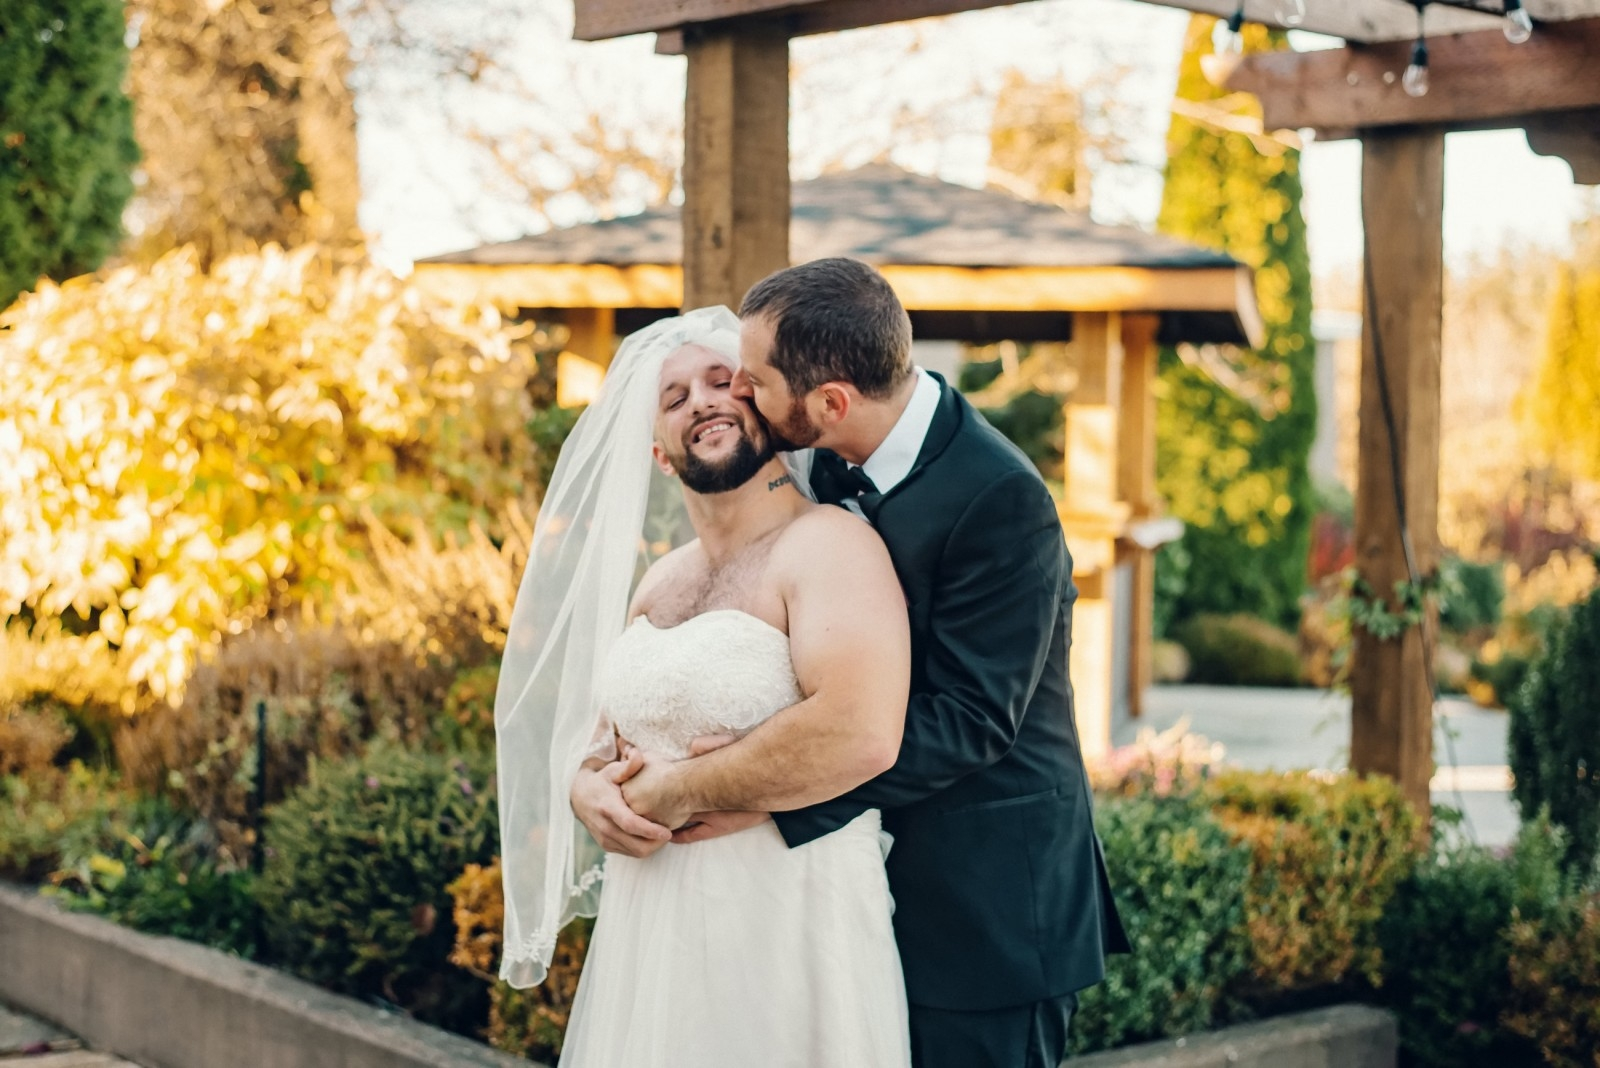 Groom In Fits Of Laughter After His Bearded Best Mate Traded Places With His Bride